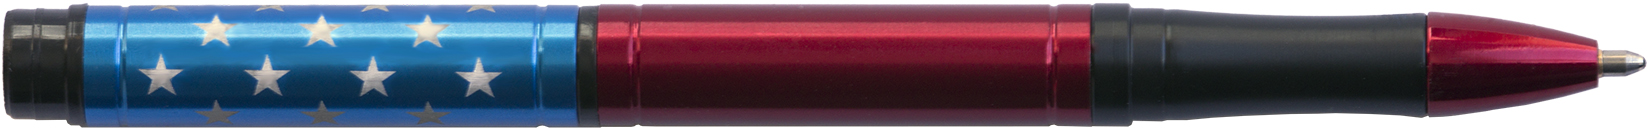 PT-SS - FISHER Red & Blue Star Spangled Space Pen, Cap LASERED w/ STARS - Black Shuttle Box